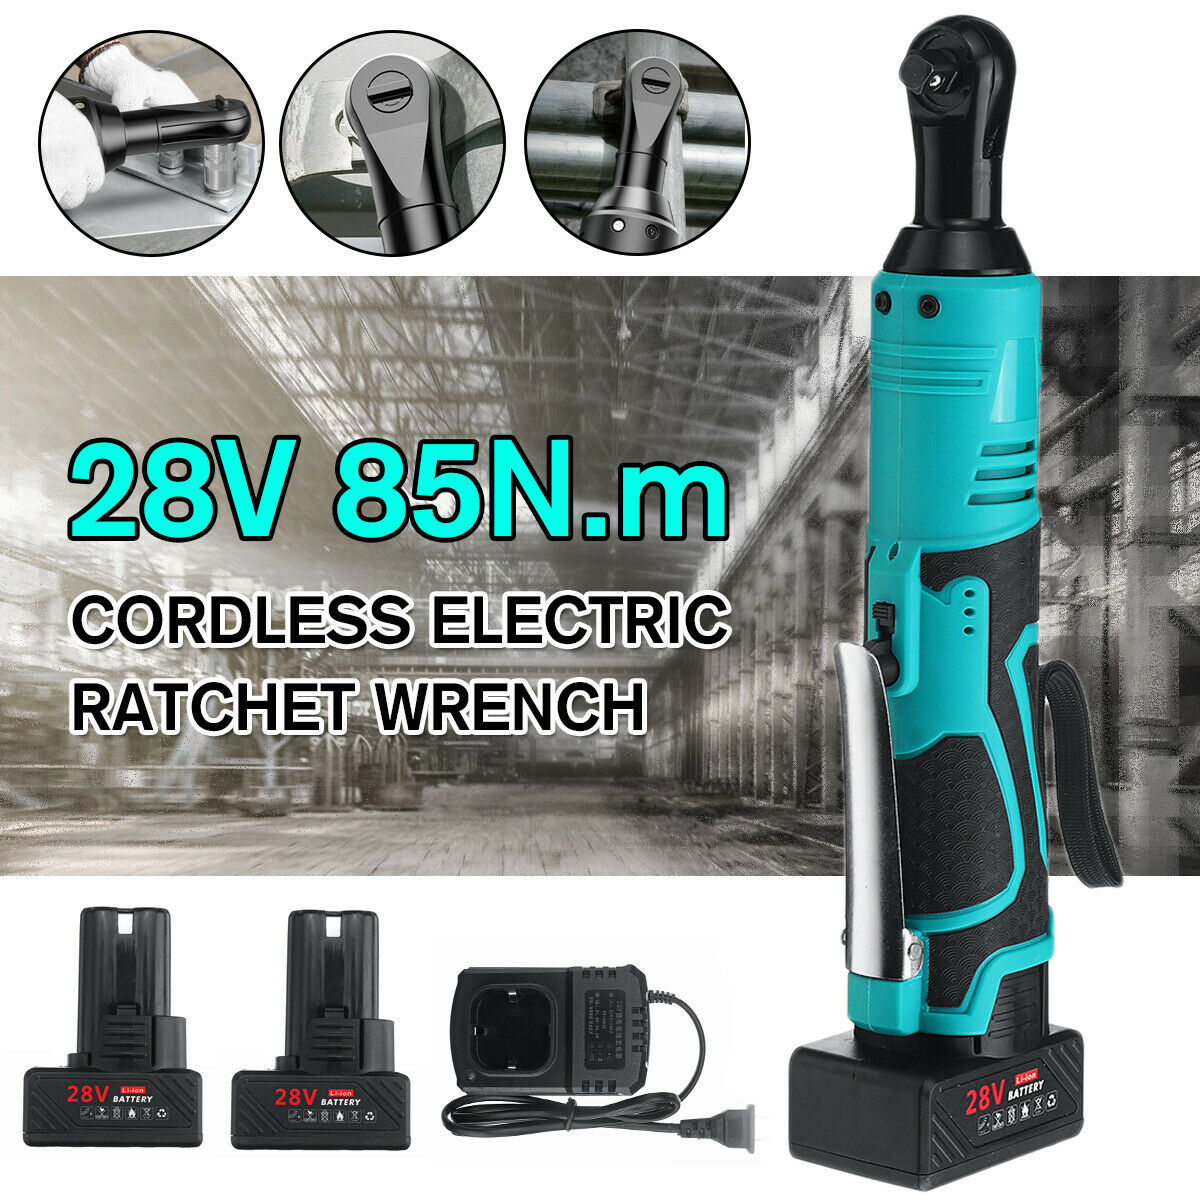 18 28V 60 85N.m 3 8'' Electric Cordless Ratchet Right Angle Wrench Tool   )